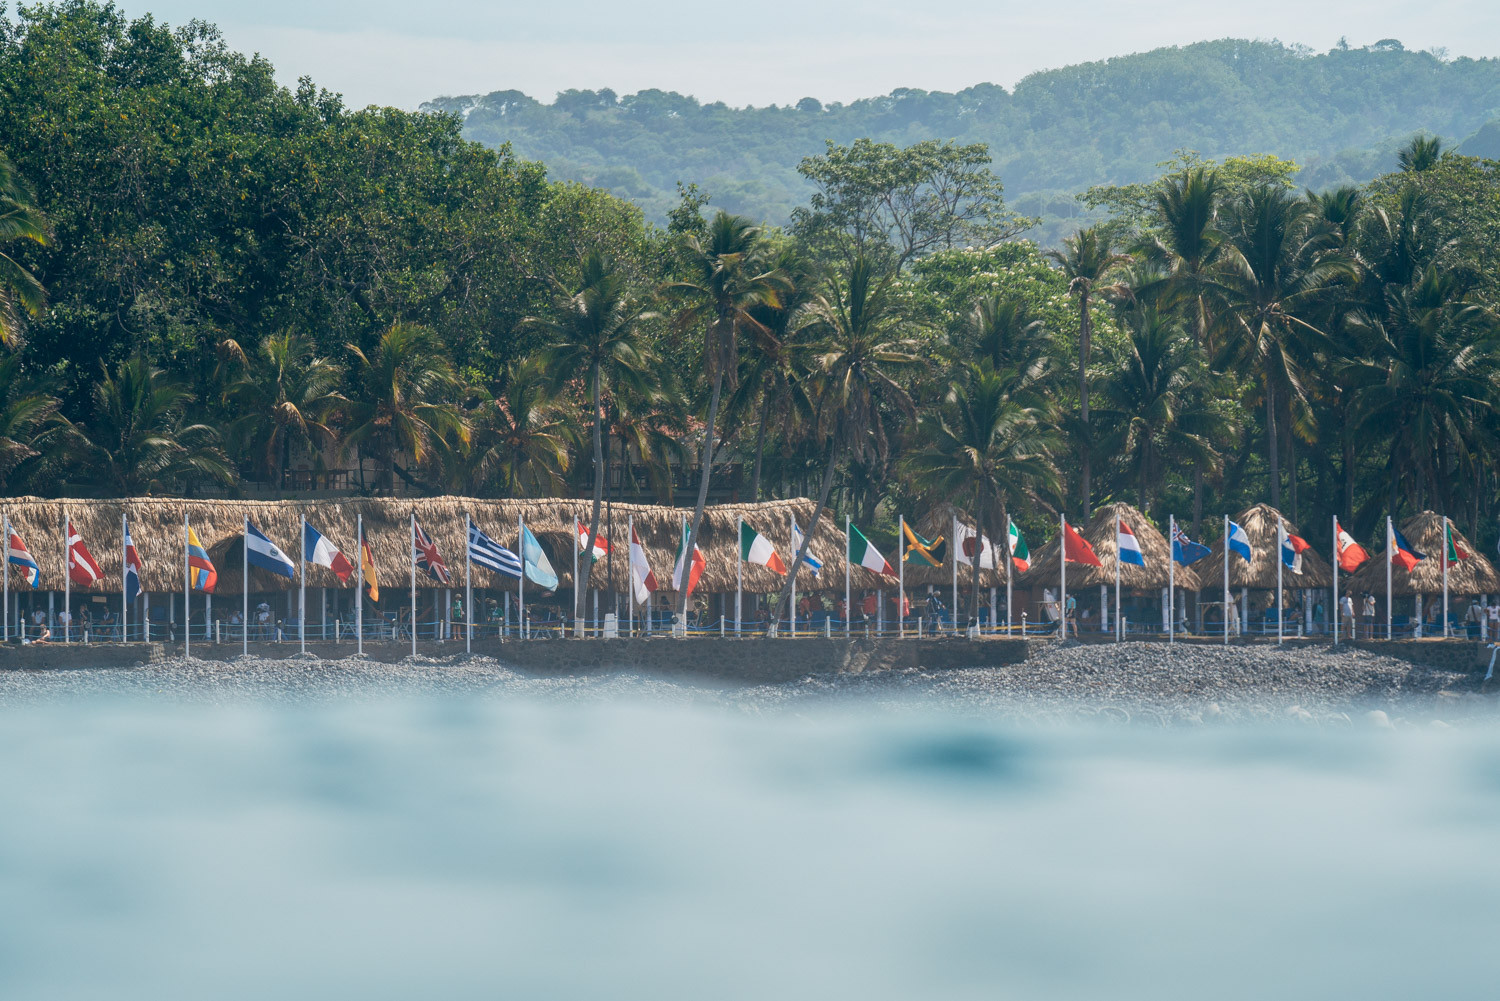 More than 250 athletes from 51 nations are set to participate in the World Surfing Games ©ISA/Pablo Jimenez